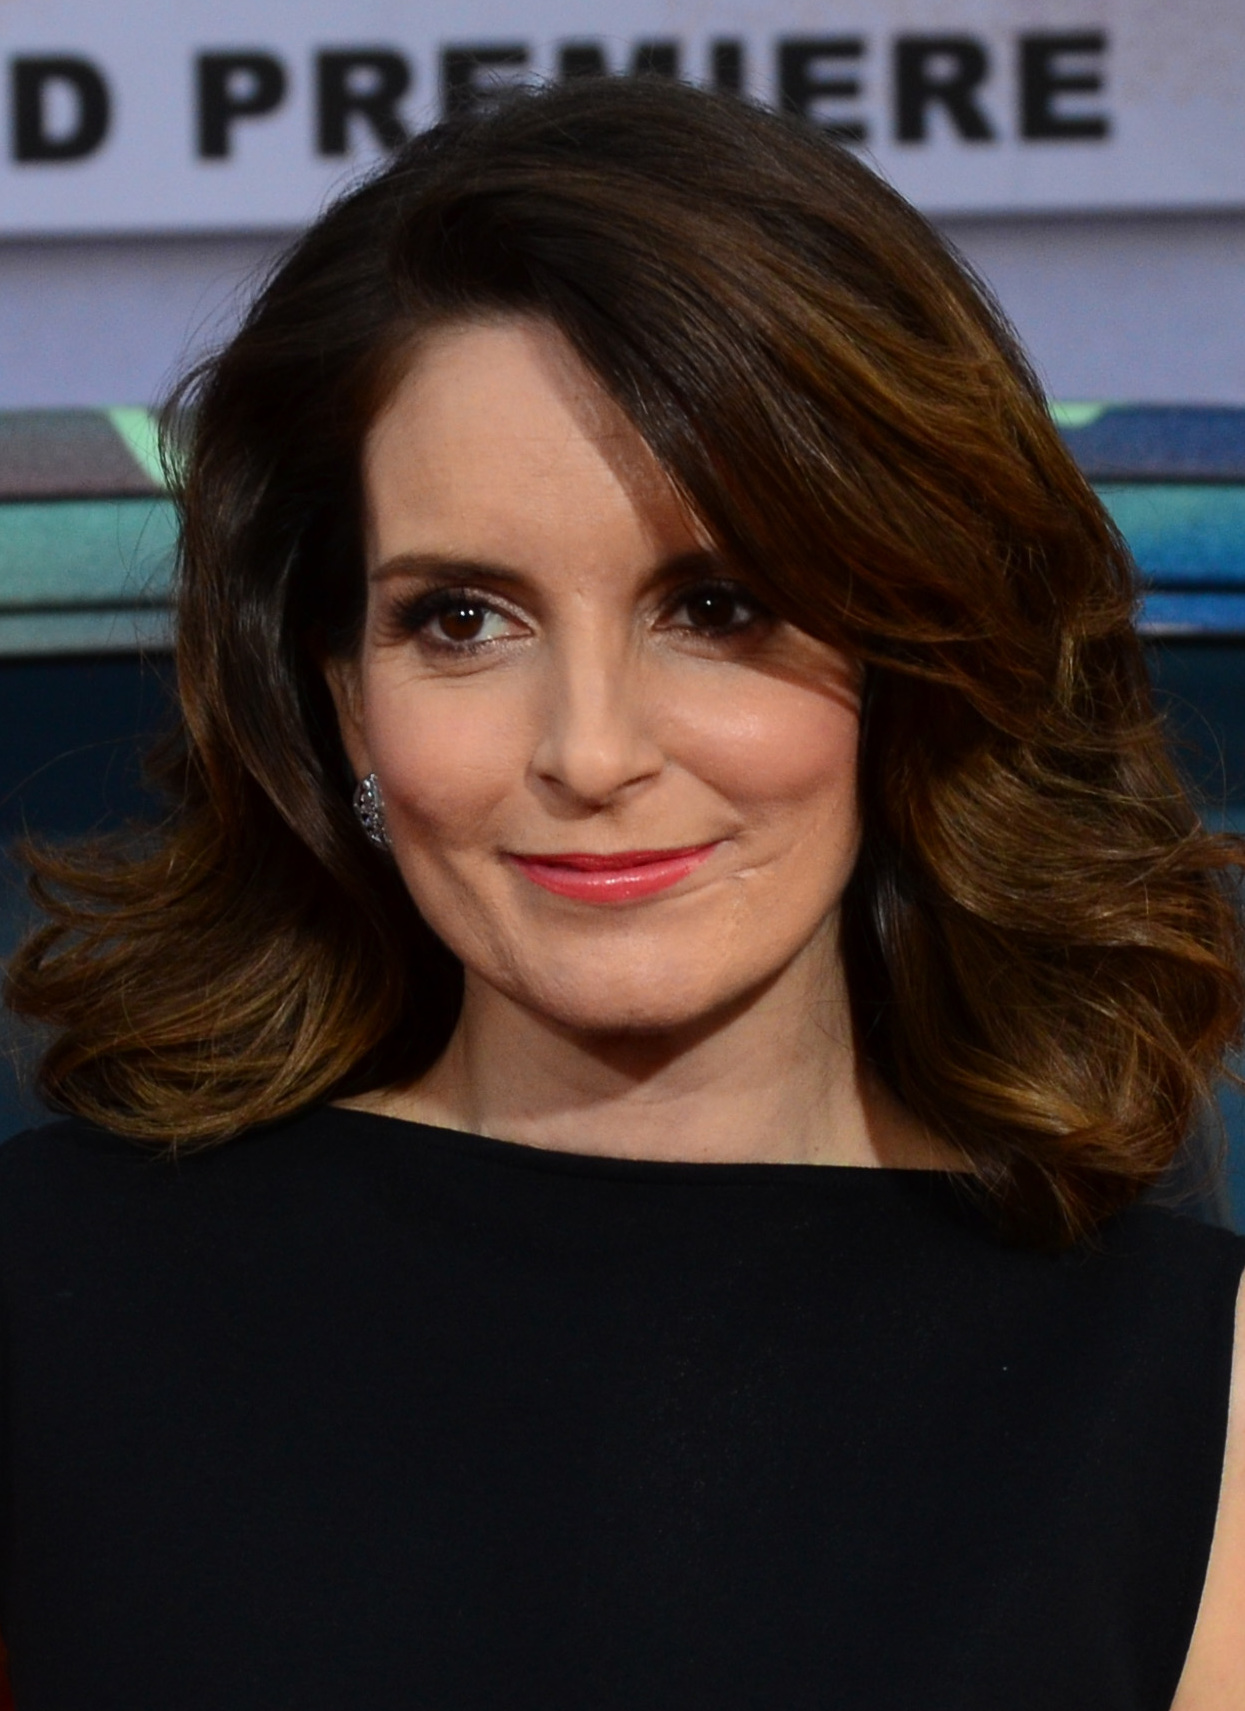 Tina Fey Wikipedia She is an actress and cinematographer, known for пробуждение жизни (2001), are you practicing communism? tina fey wikipedia